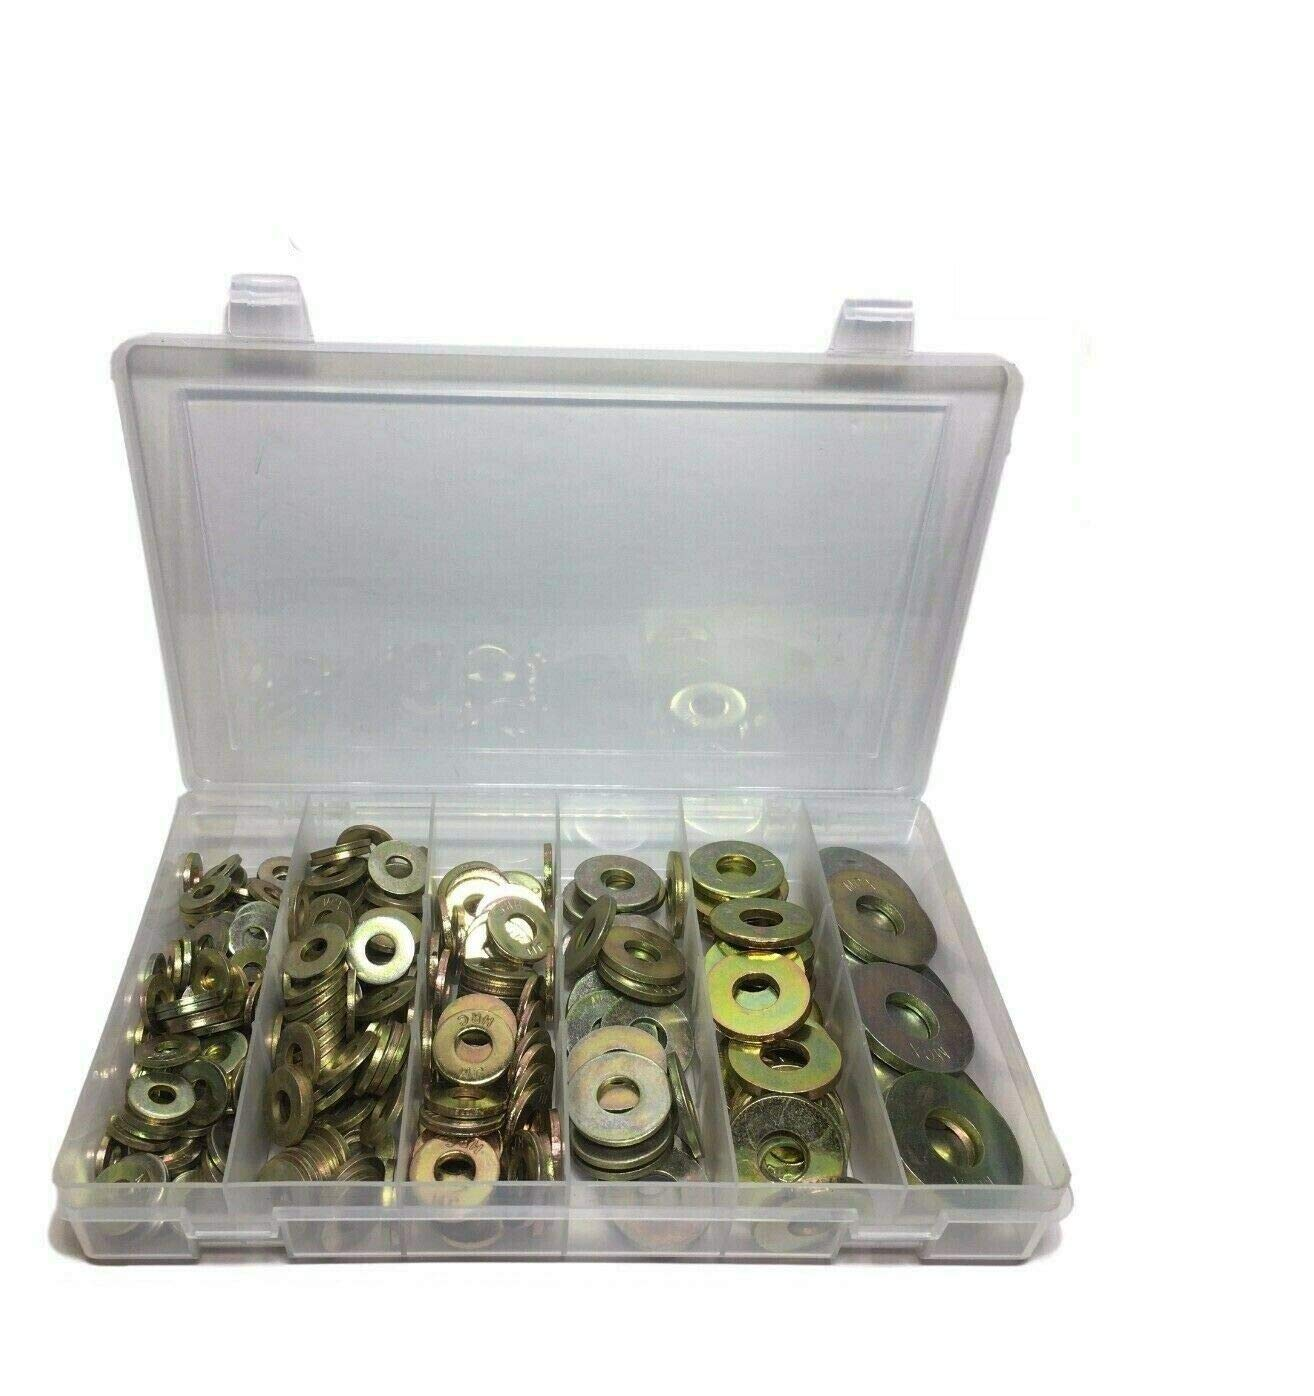 washers for Screws Grade 8 USS Extra Thick Heavy Duty Flat Washer Assortment Kit 6 Sizes 310 Piece Quality Metal Fast